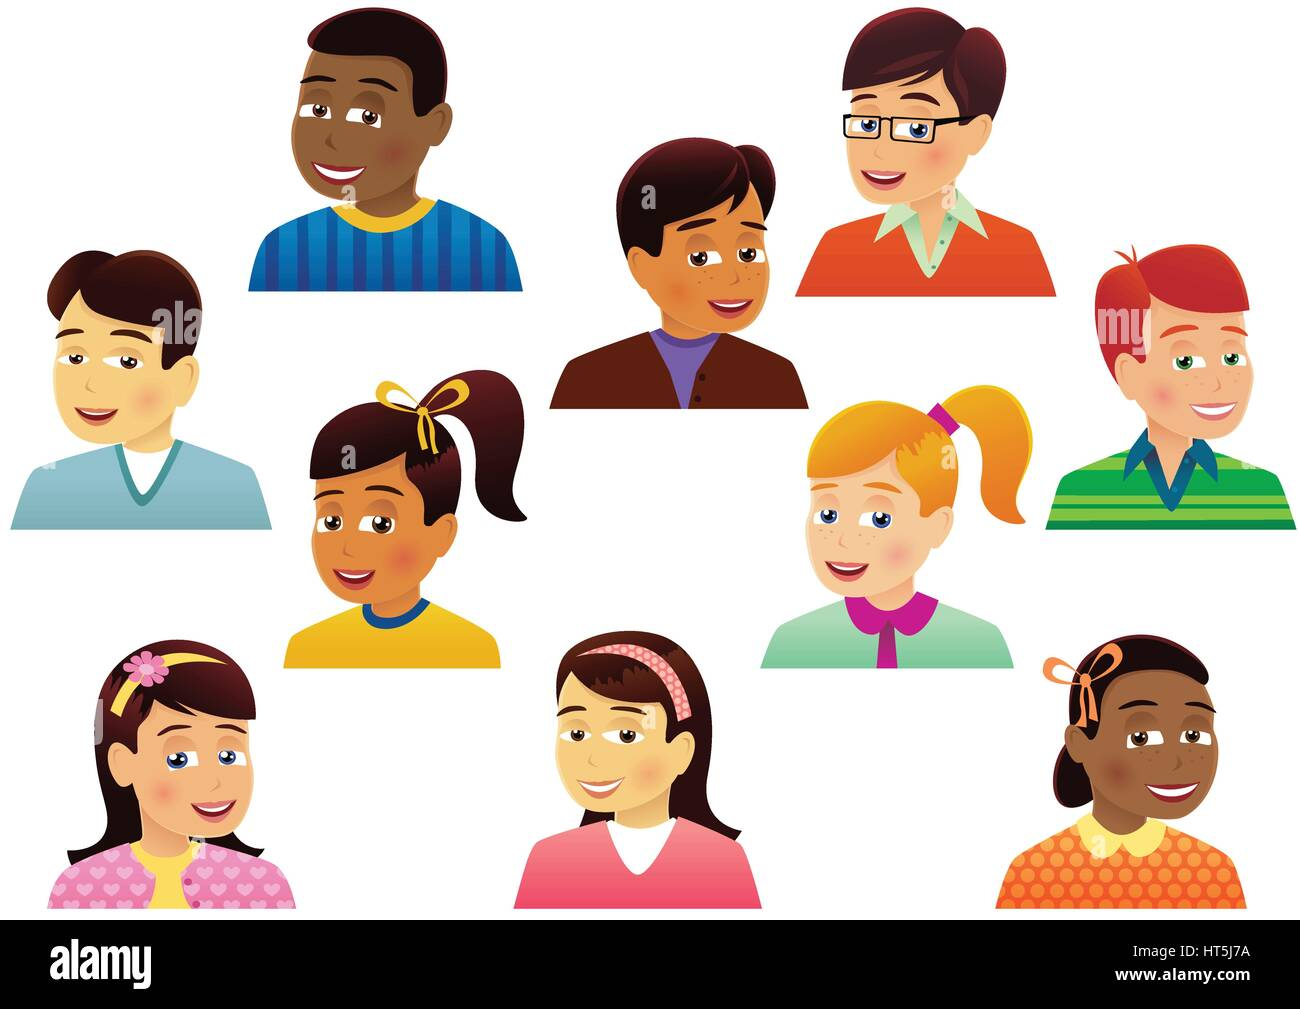 Ten individual and different children's head and shoulder detail images. - Stock Vector